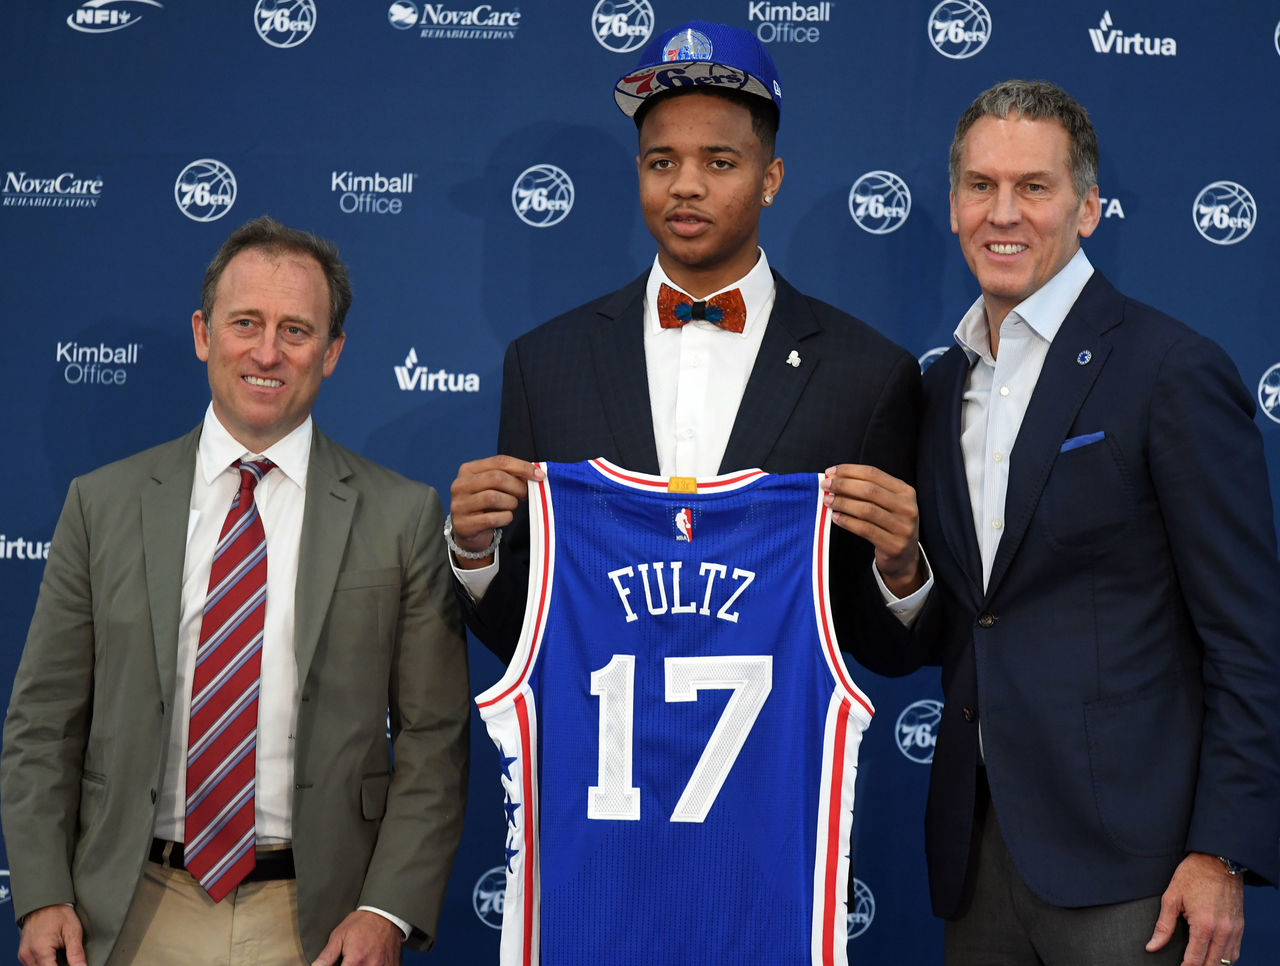 Cropped_2017-06-23t202614z_1548643940_nocid_rtrmadp_3_nba-philadelphia-76ers-press-conference